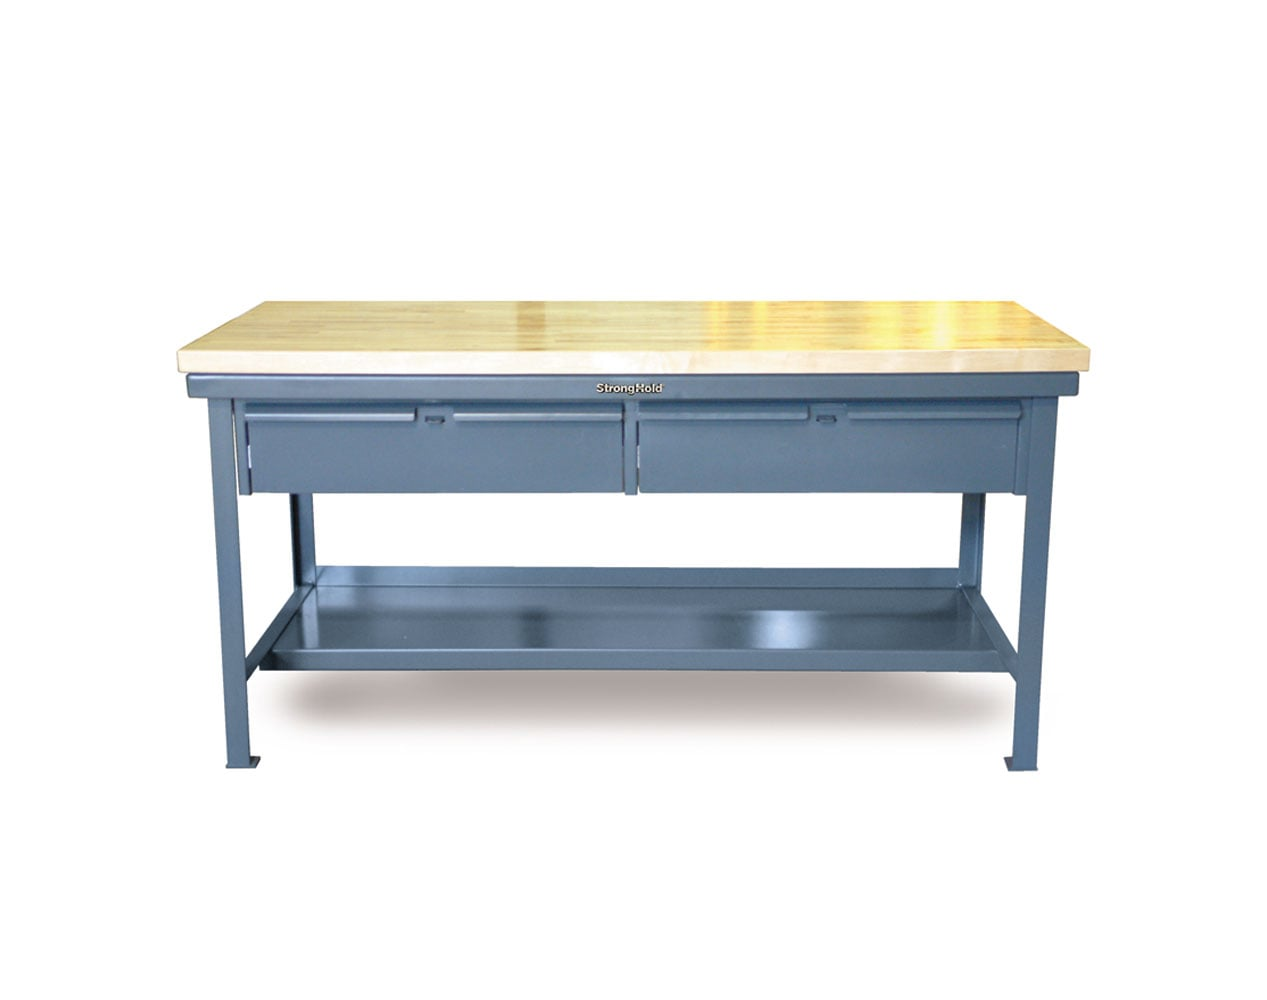 Extra Heavy Duty 7 GA Shop Table with Maple Top, 2 Drawers, 1 Shelf – 48 In. W x 30 In. D x 34 In. H